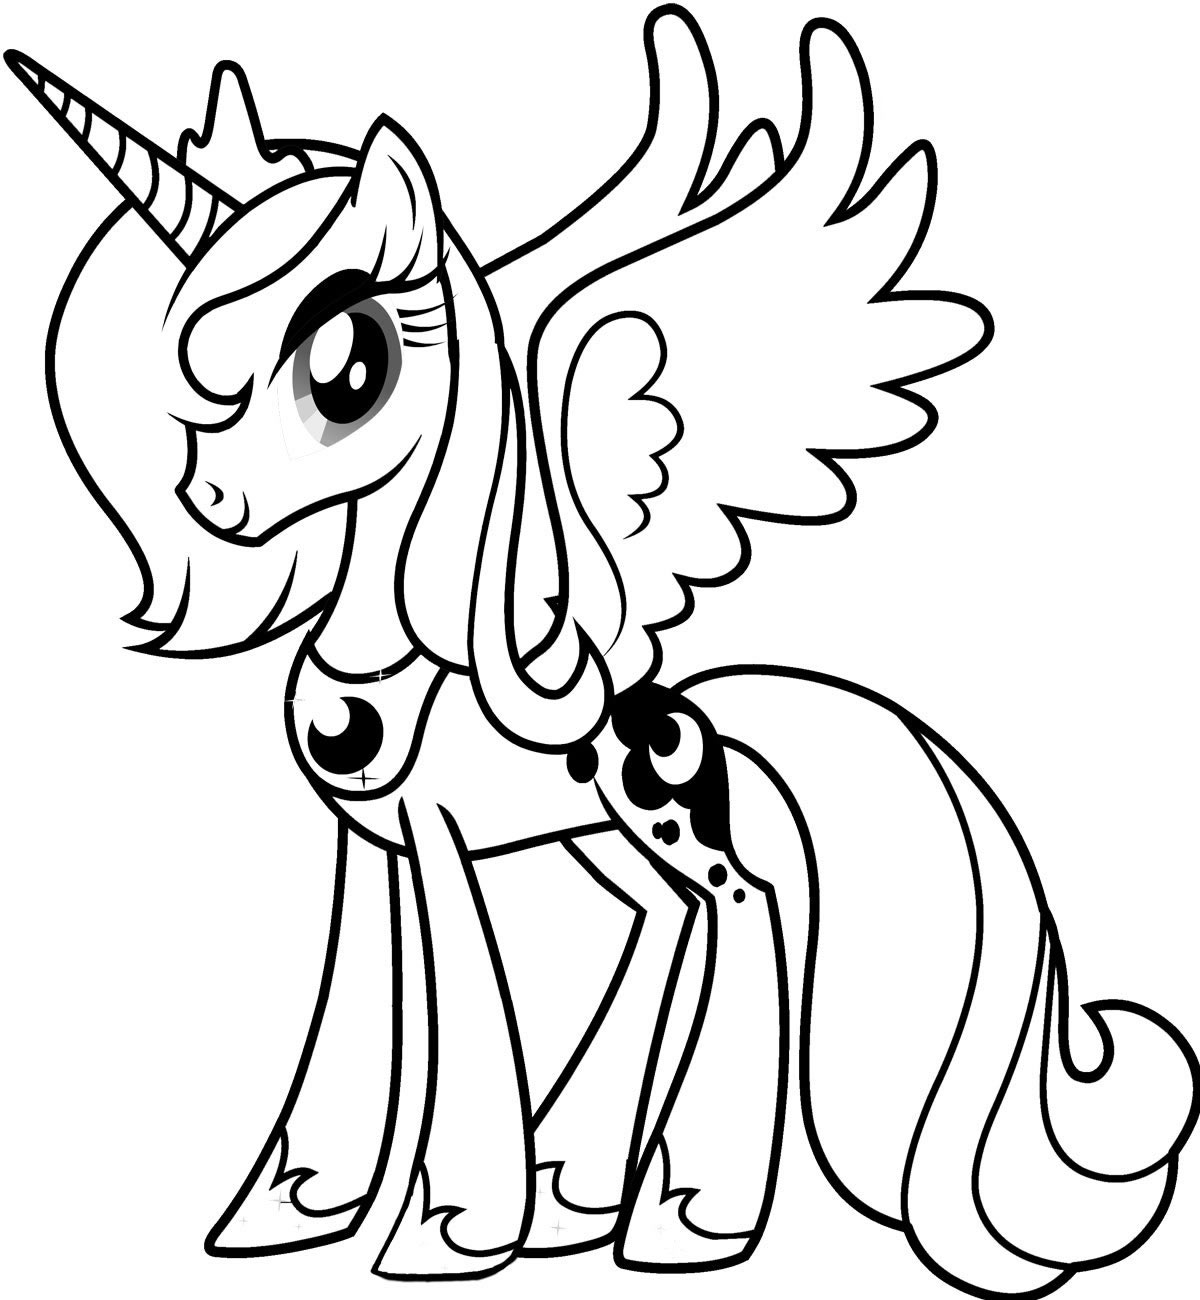 my little pony printouts free printable my little pony coloring pages for kids pony my printouts little